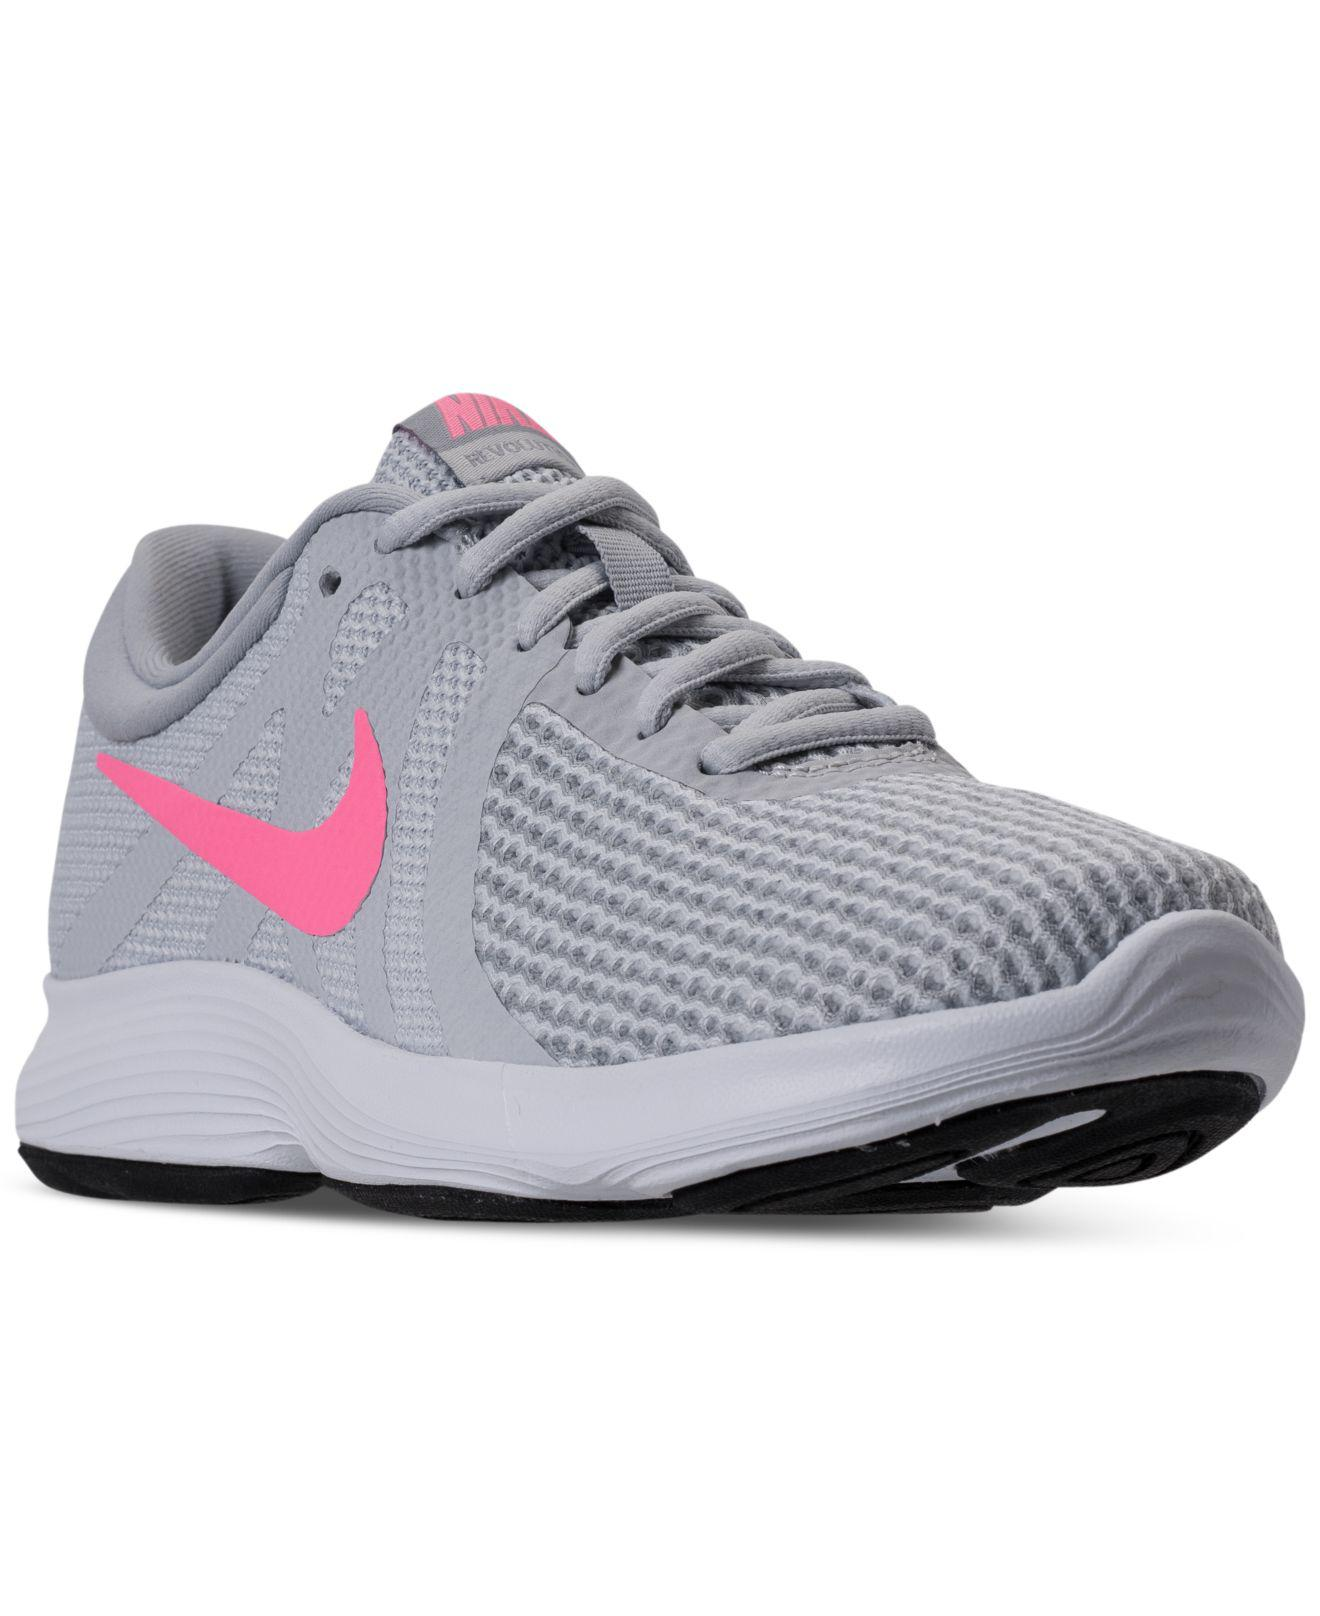 877416ab6760f Lyst - Nike Women s Revolution 4 Running Sneakers From Finish Line ...